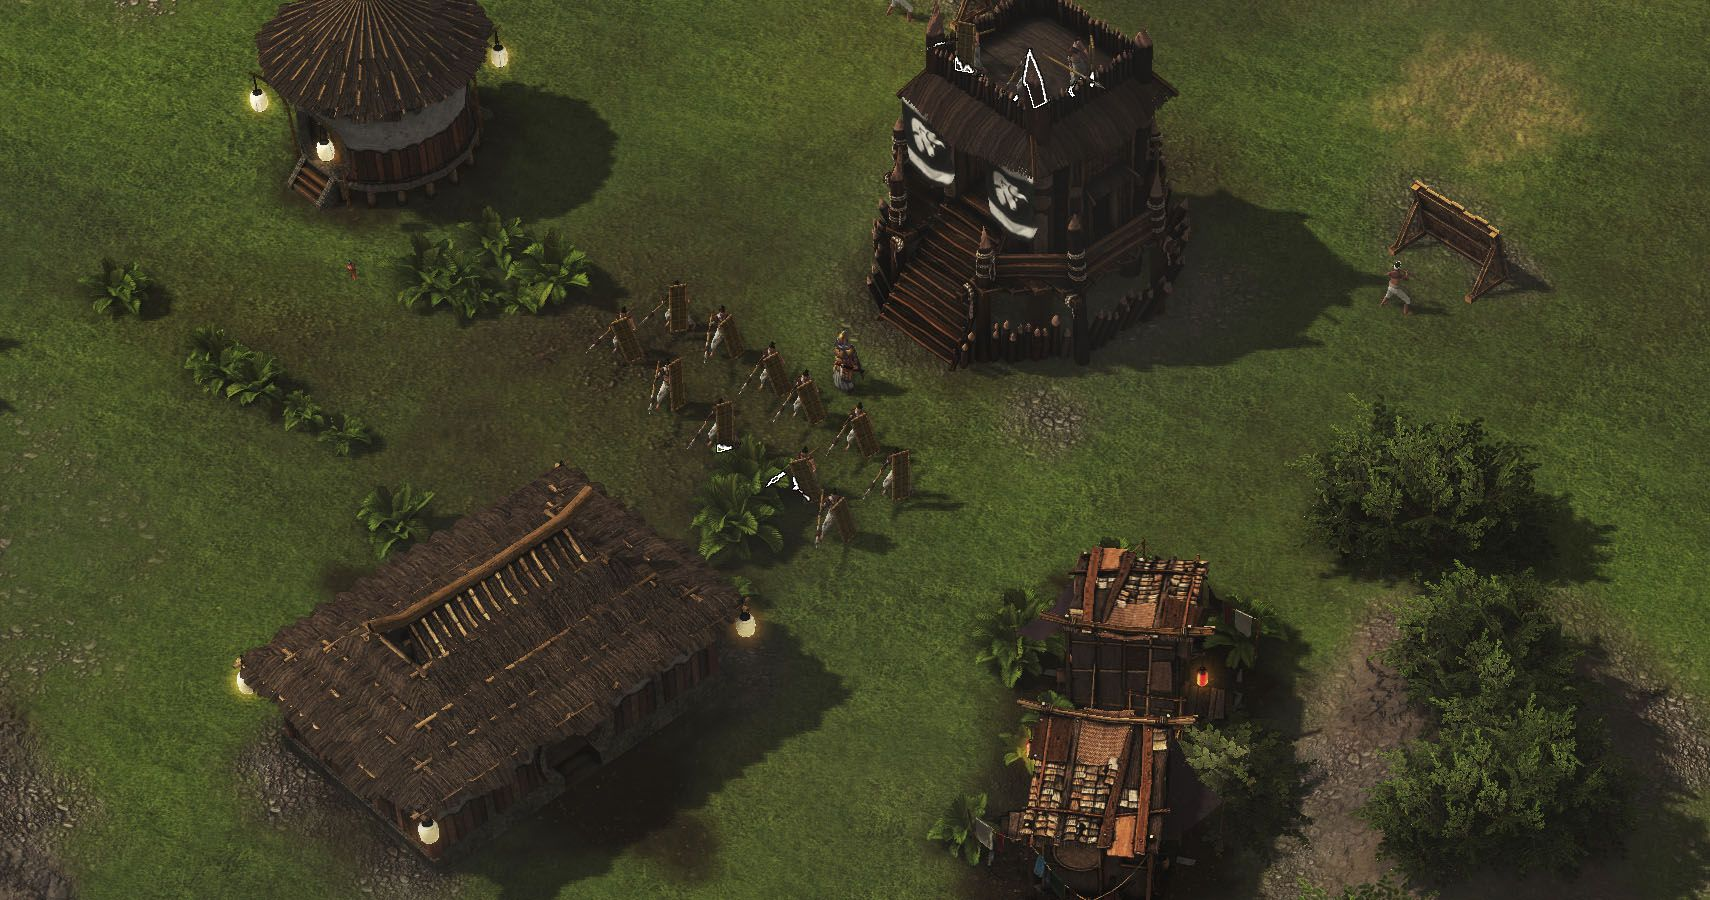 Stronghold Warlords Demo: Now There's An Army To Command | Aionsigs.com